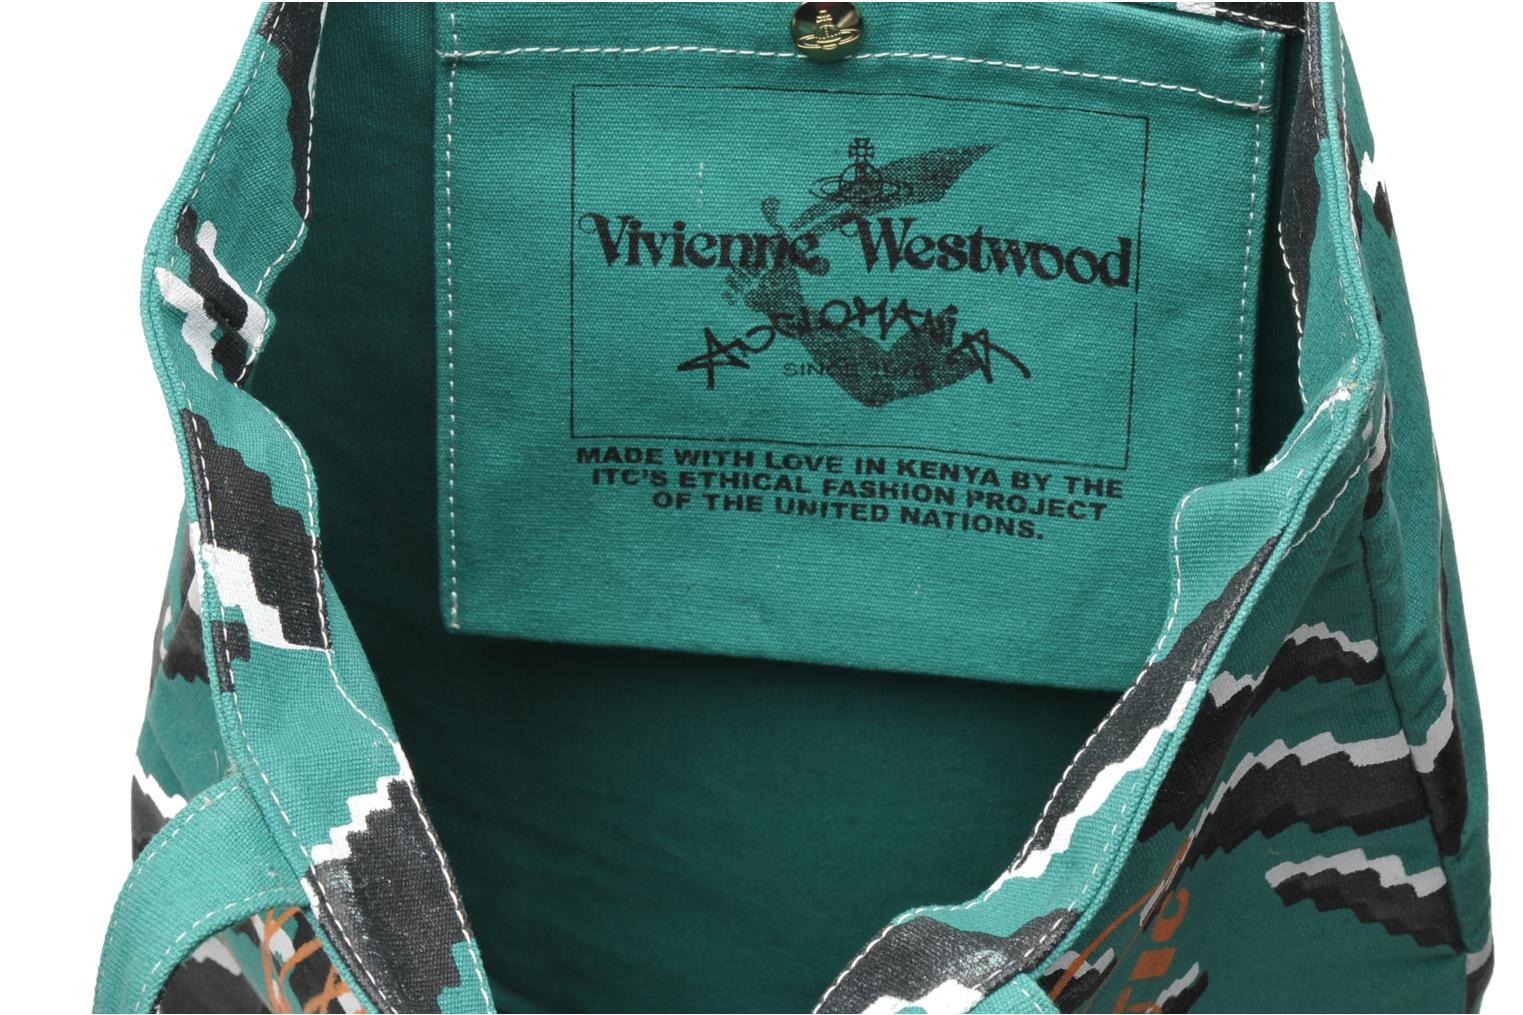 http://www.sarenza.it/vivienne-westwood-africa-project-artic-shopper-luxe-s1951-p0000090401